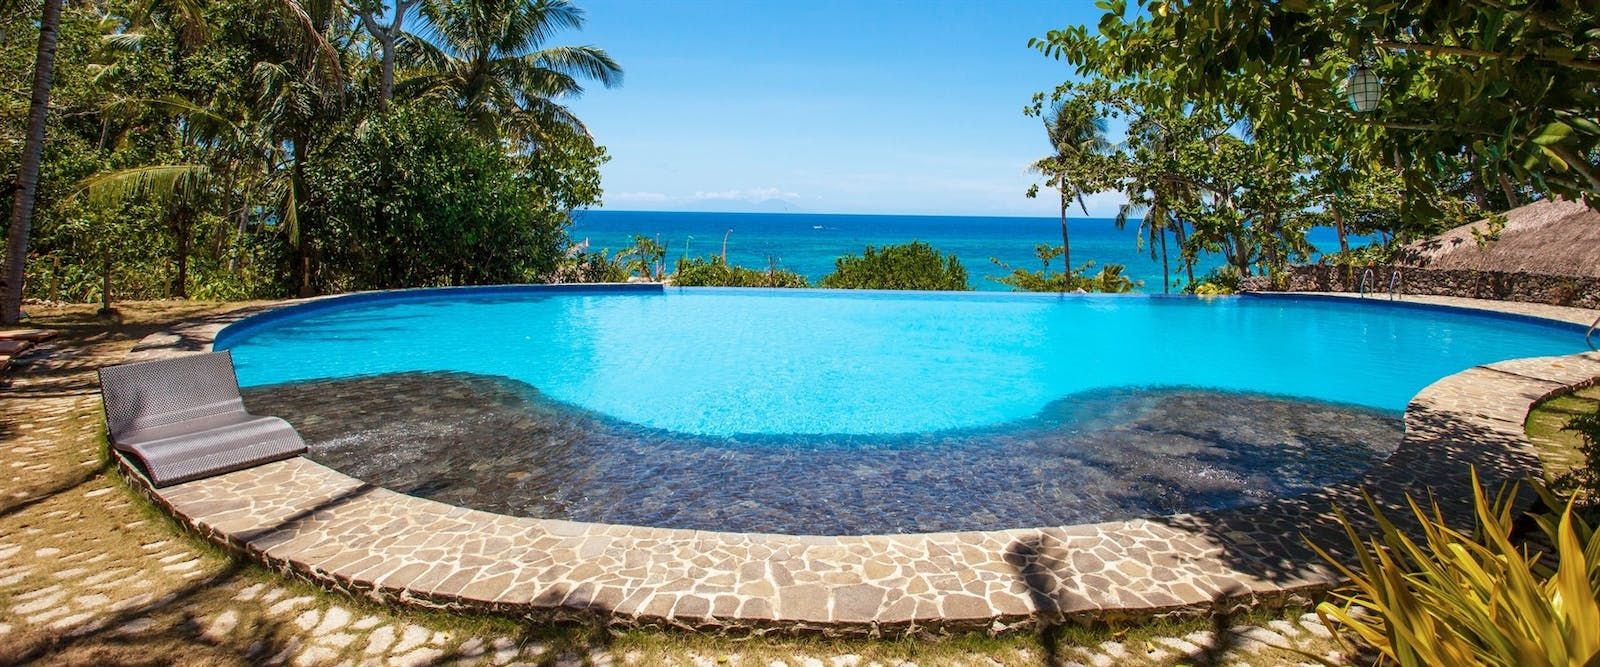 Swimming Pool at Amun Ini Beach Resort & Spa, Philippines